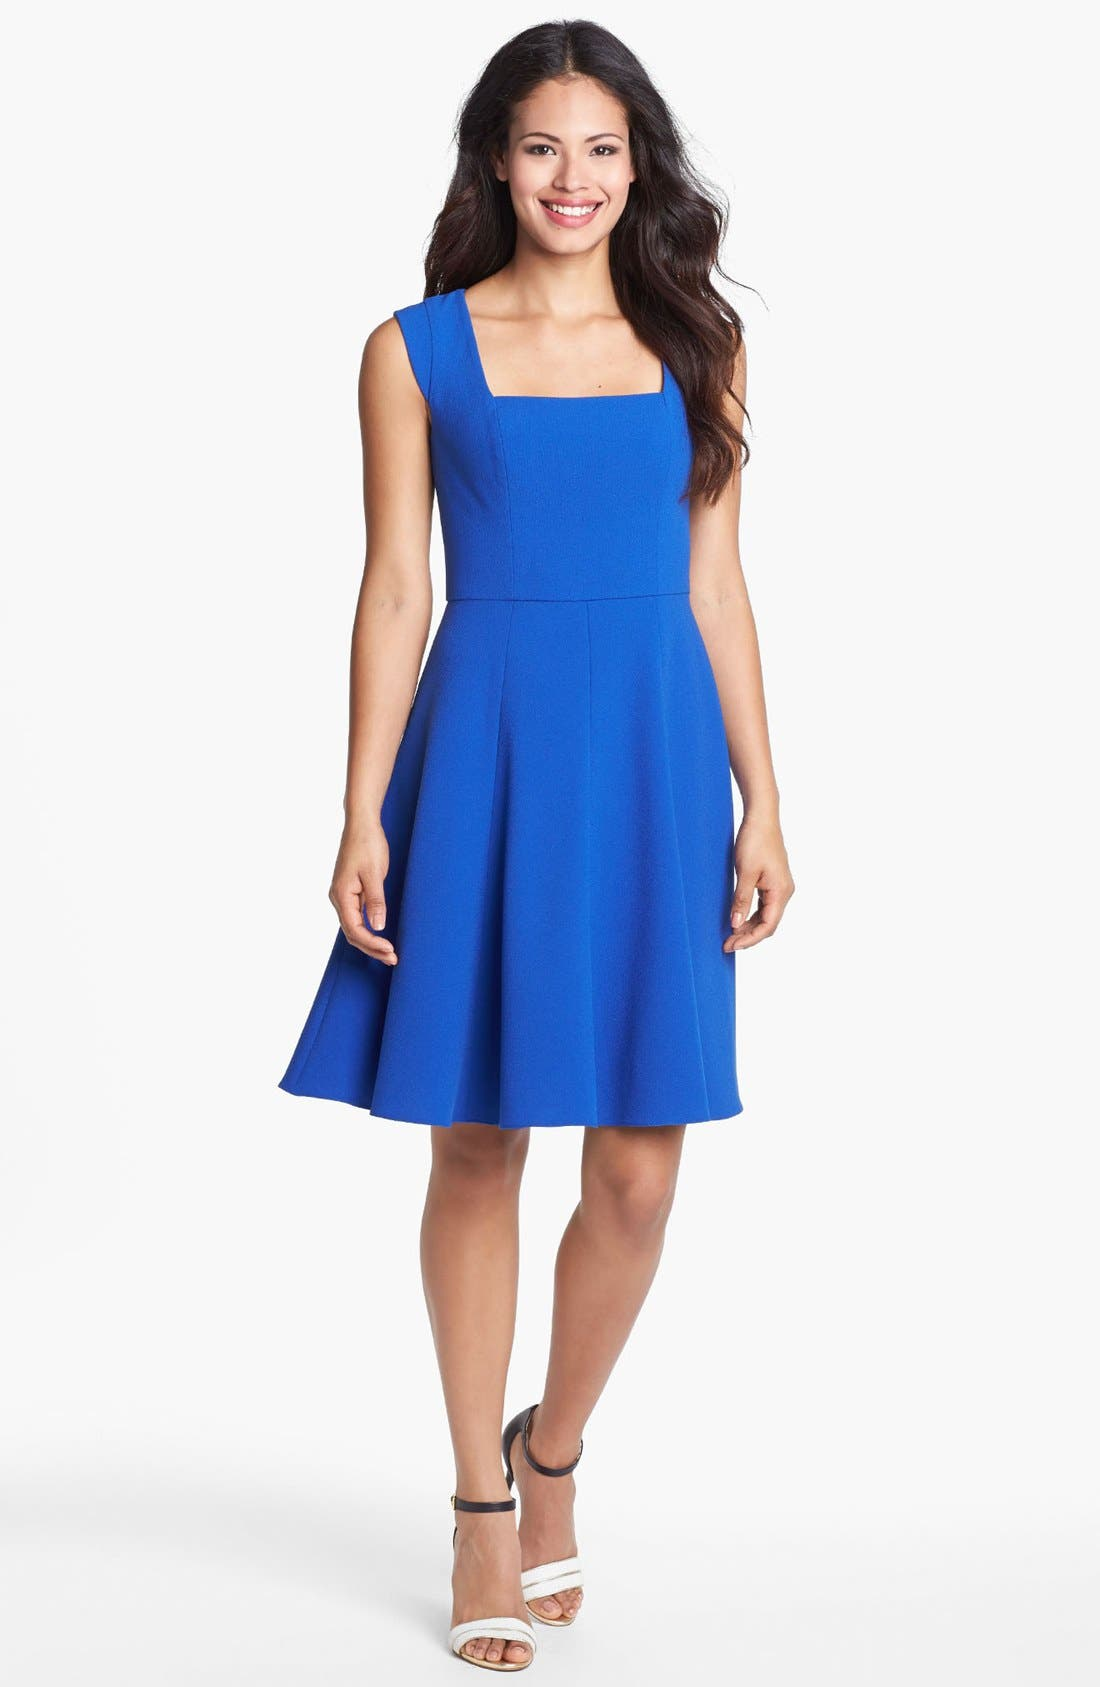 Alternate Image 1 Selected - Ivy & Blu for Maggy Boutique Fit & Flare Dress (Petite)